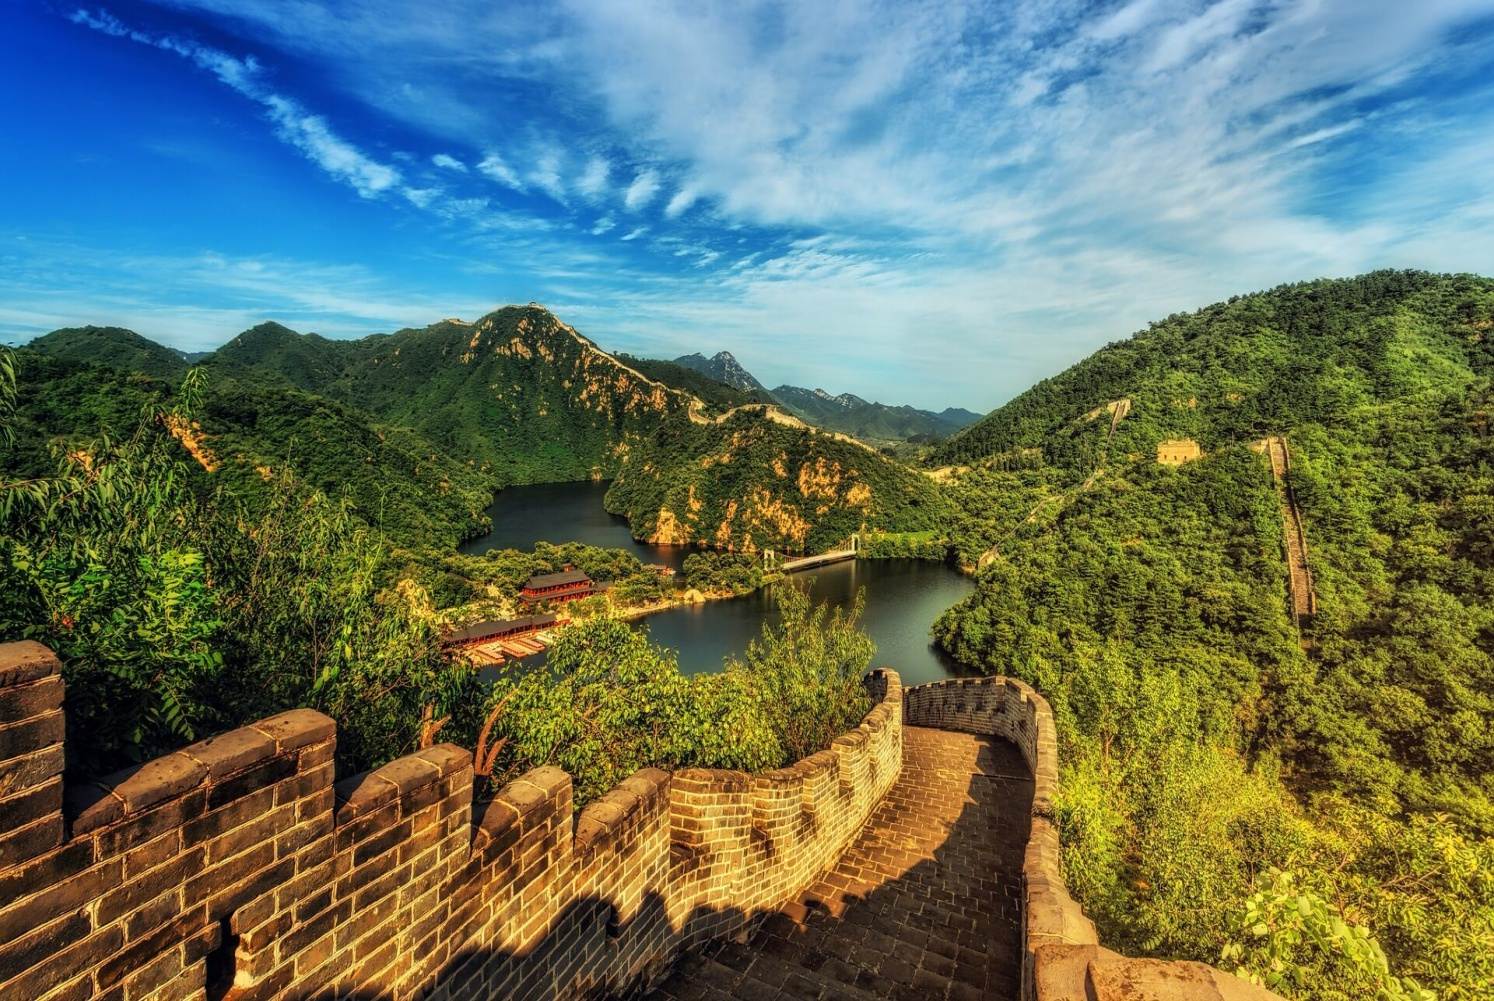 Day 4: The Great Wall - Seeing really is believing with China's Great Wall. Walk and climb your way up and down this magnificent structure, looking out across the deeps and shades around you like all that have come before, going back thousands of years.